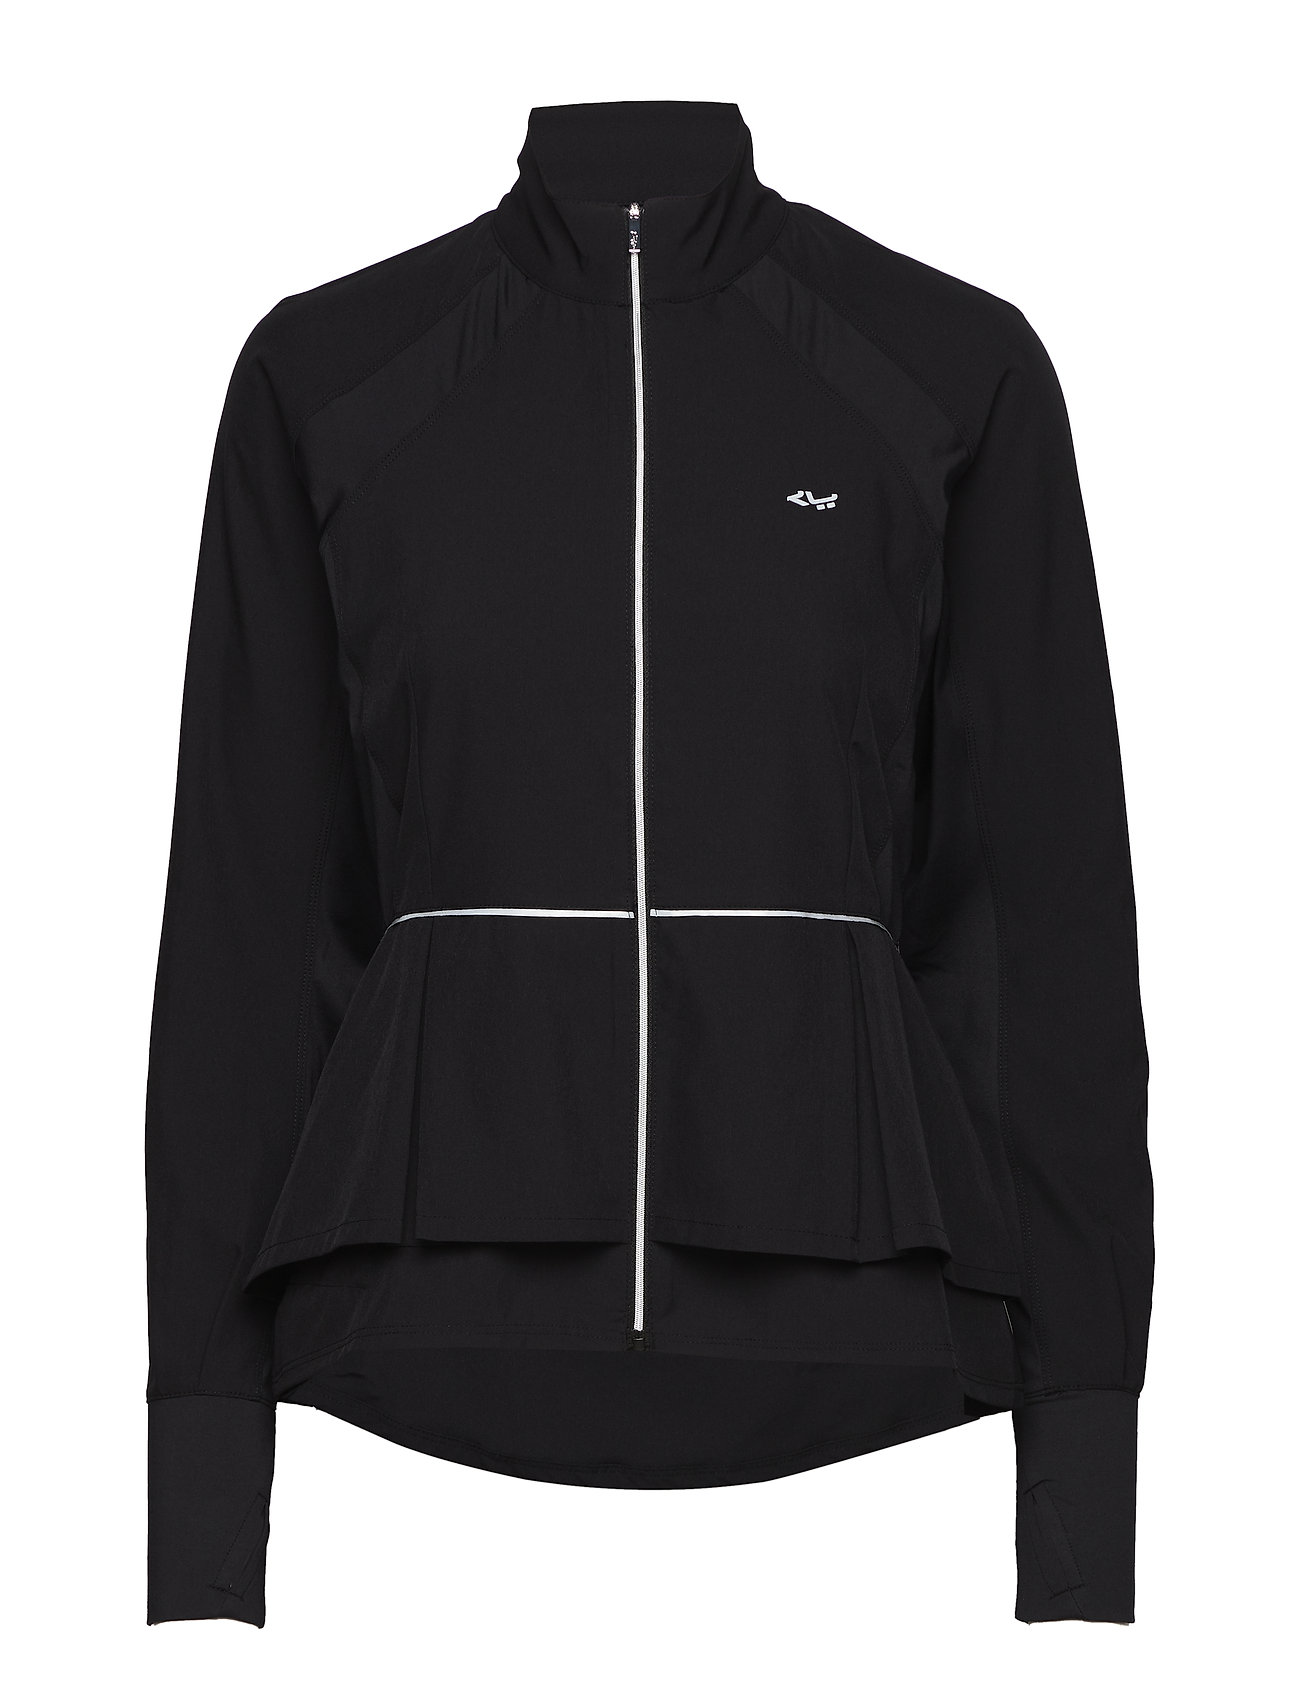 Röhnisch SPRINT JACKET - BLACK